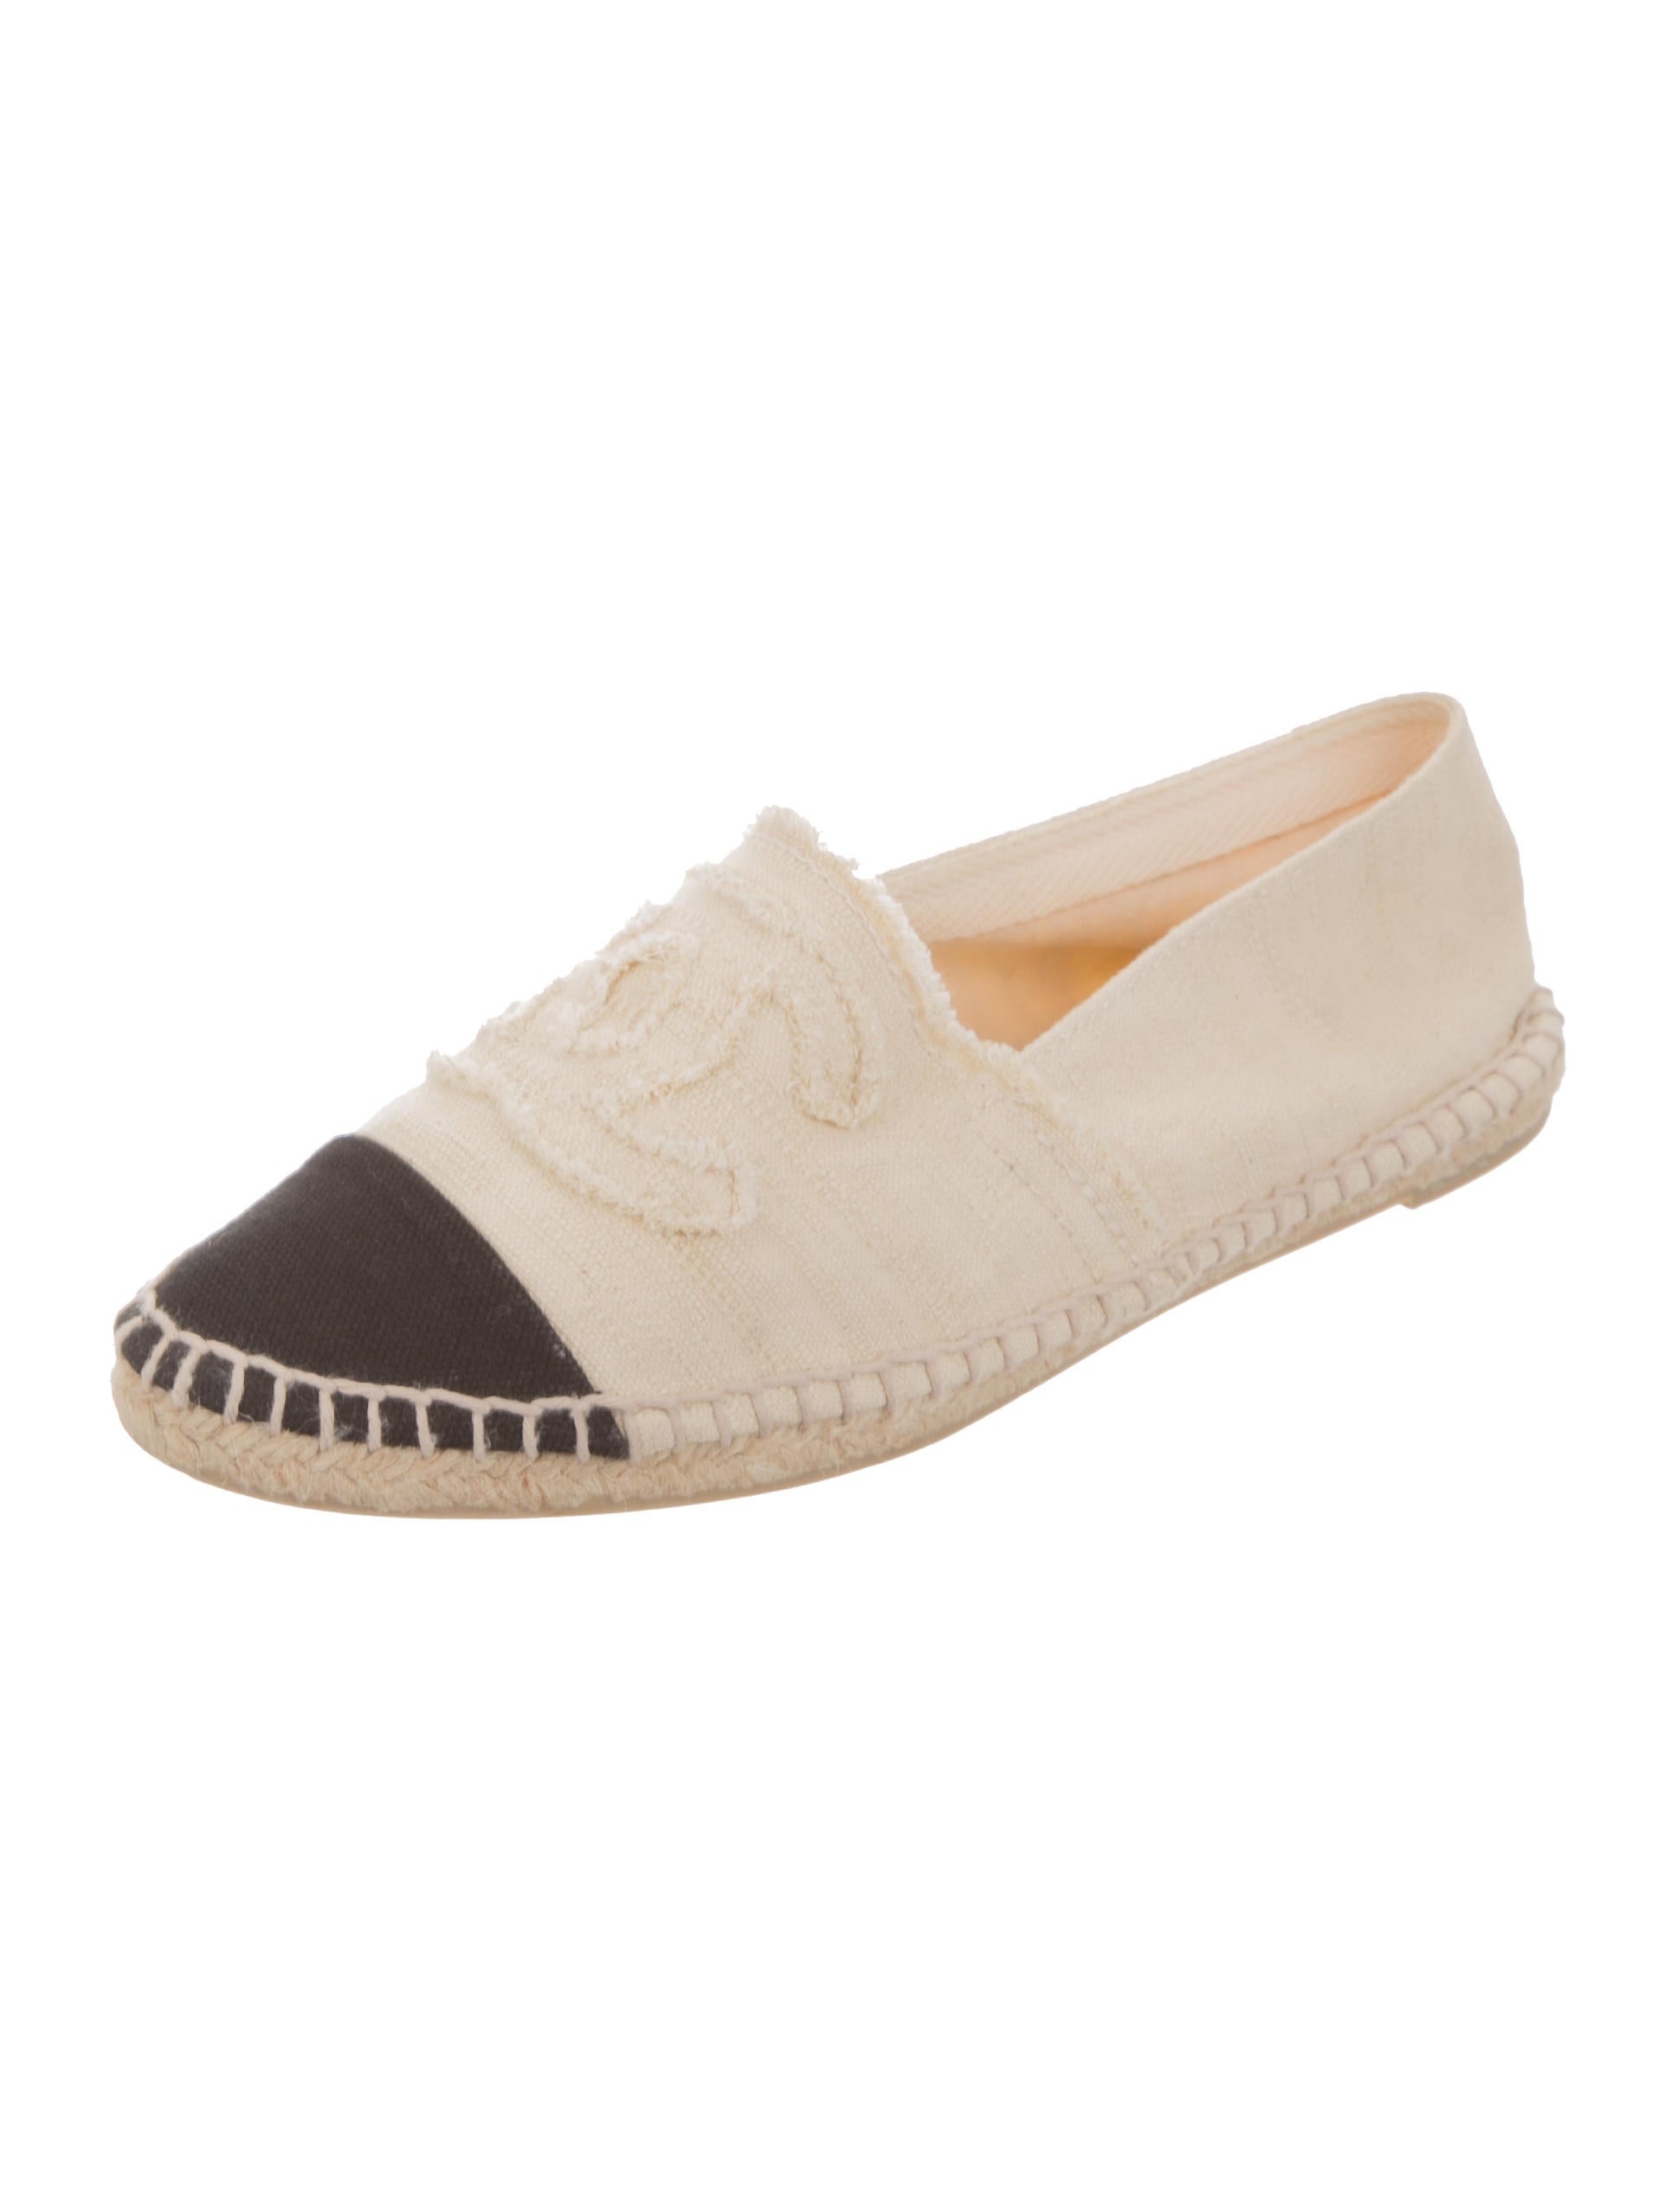 chanel canvas espadrille flats shoes cha155974 the